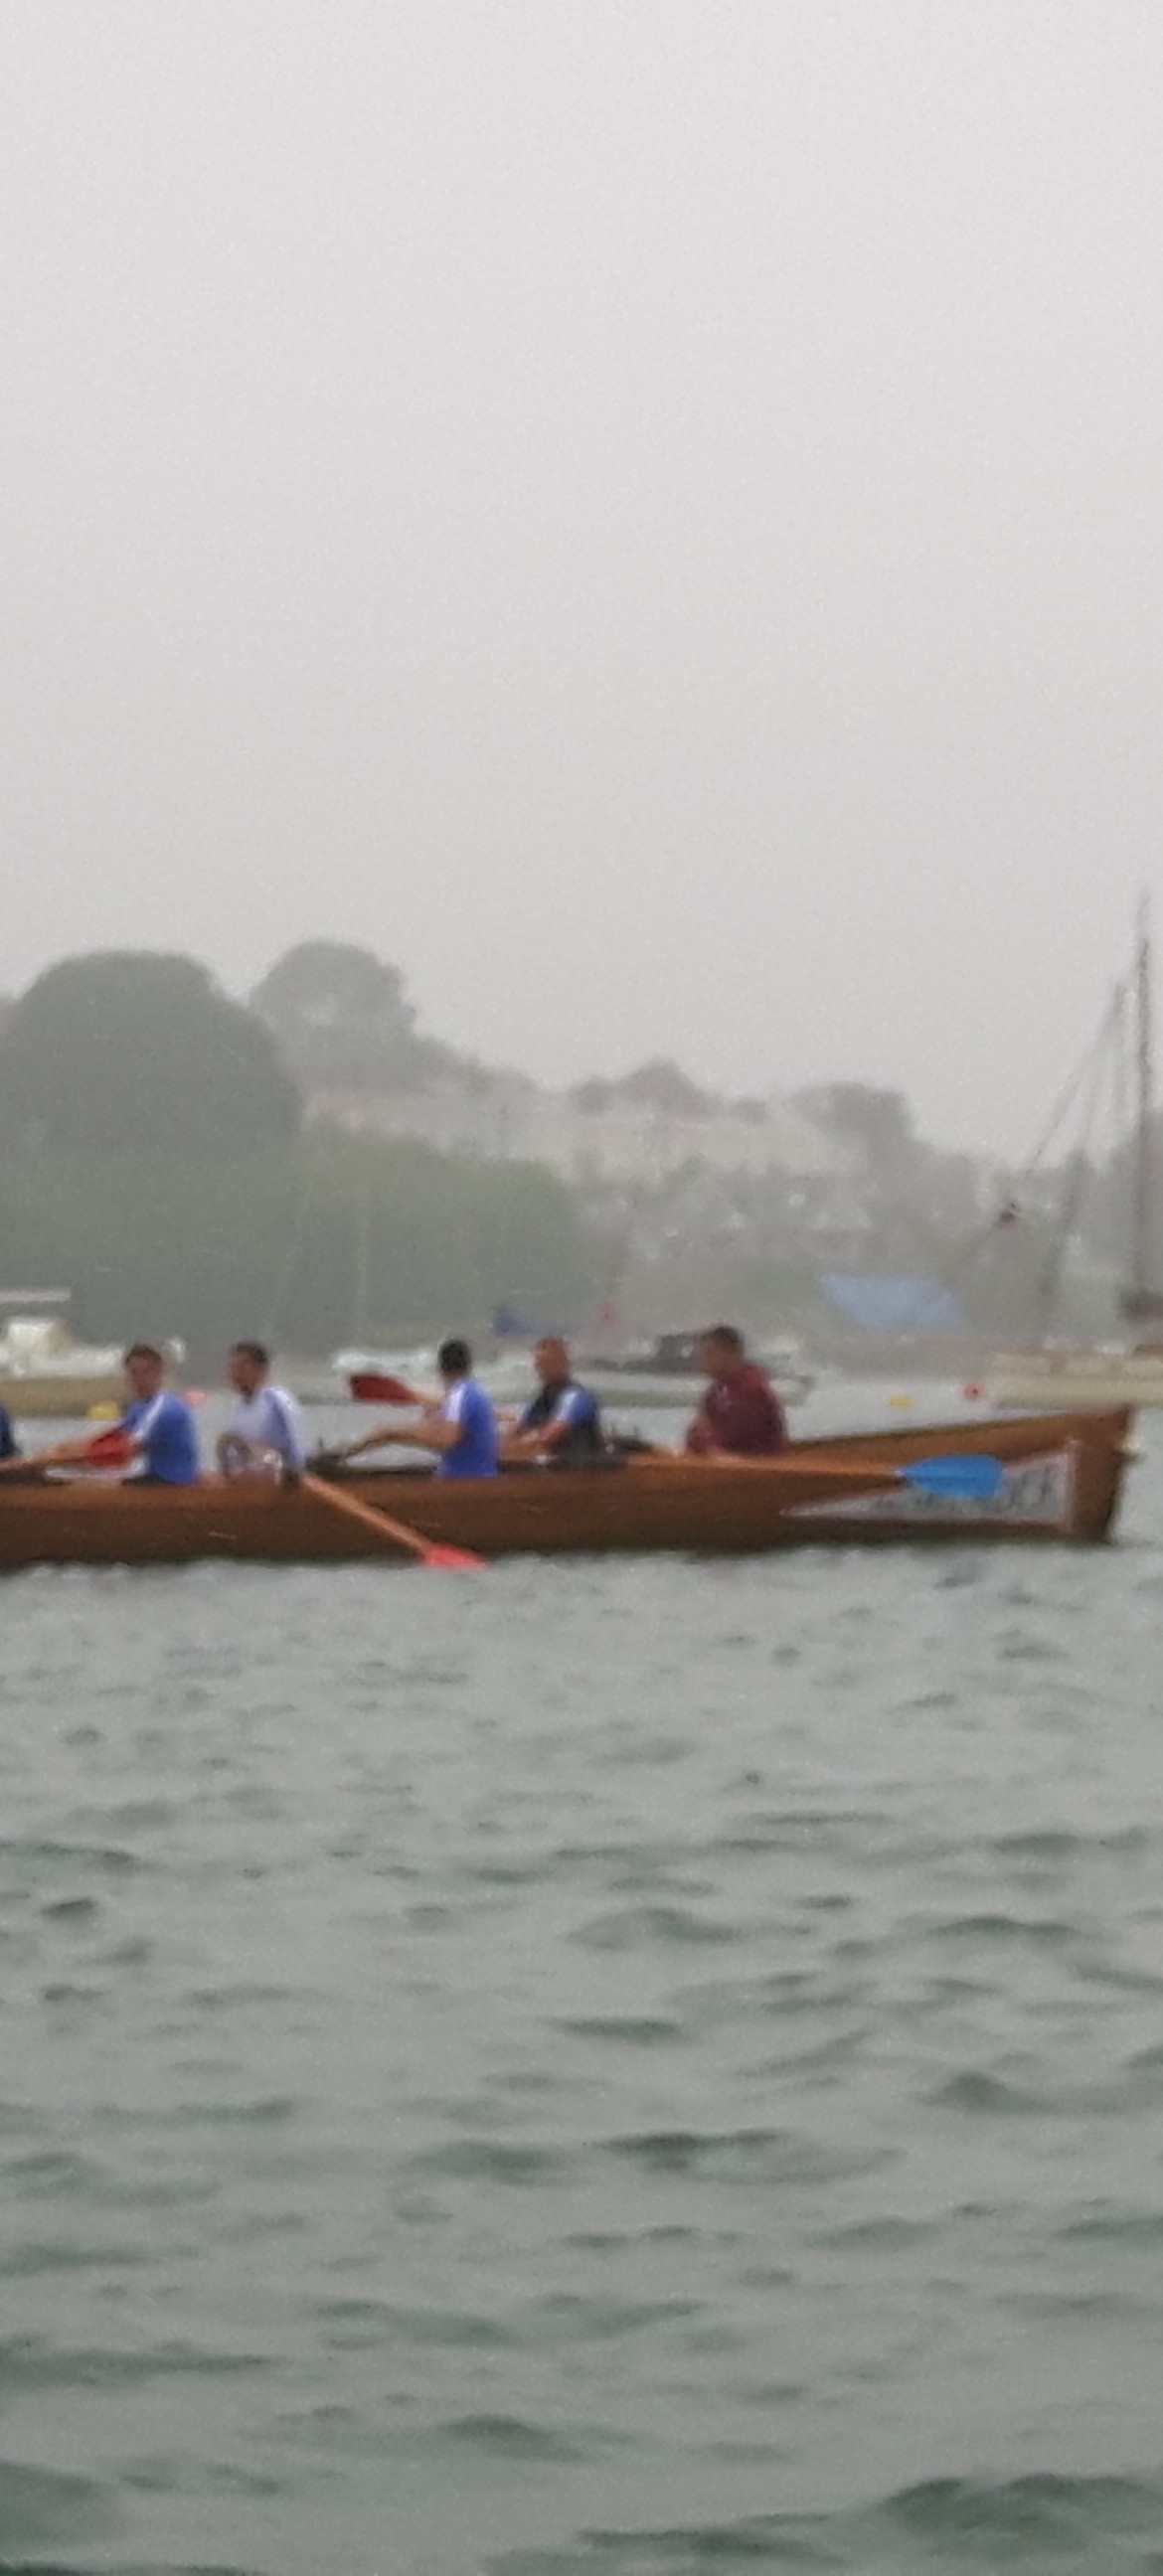 Our regatta